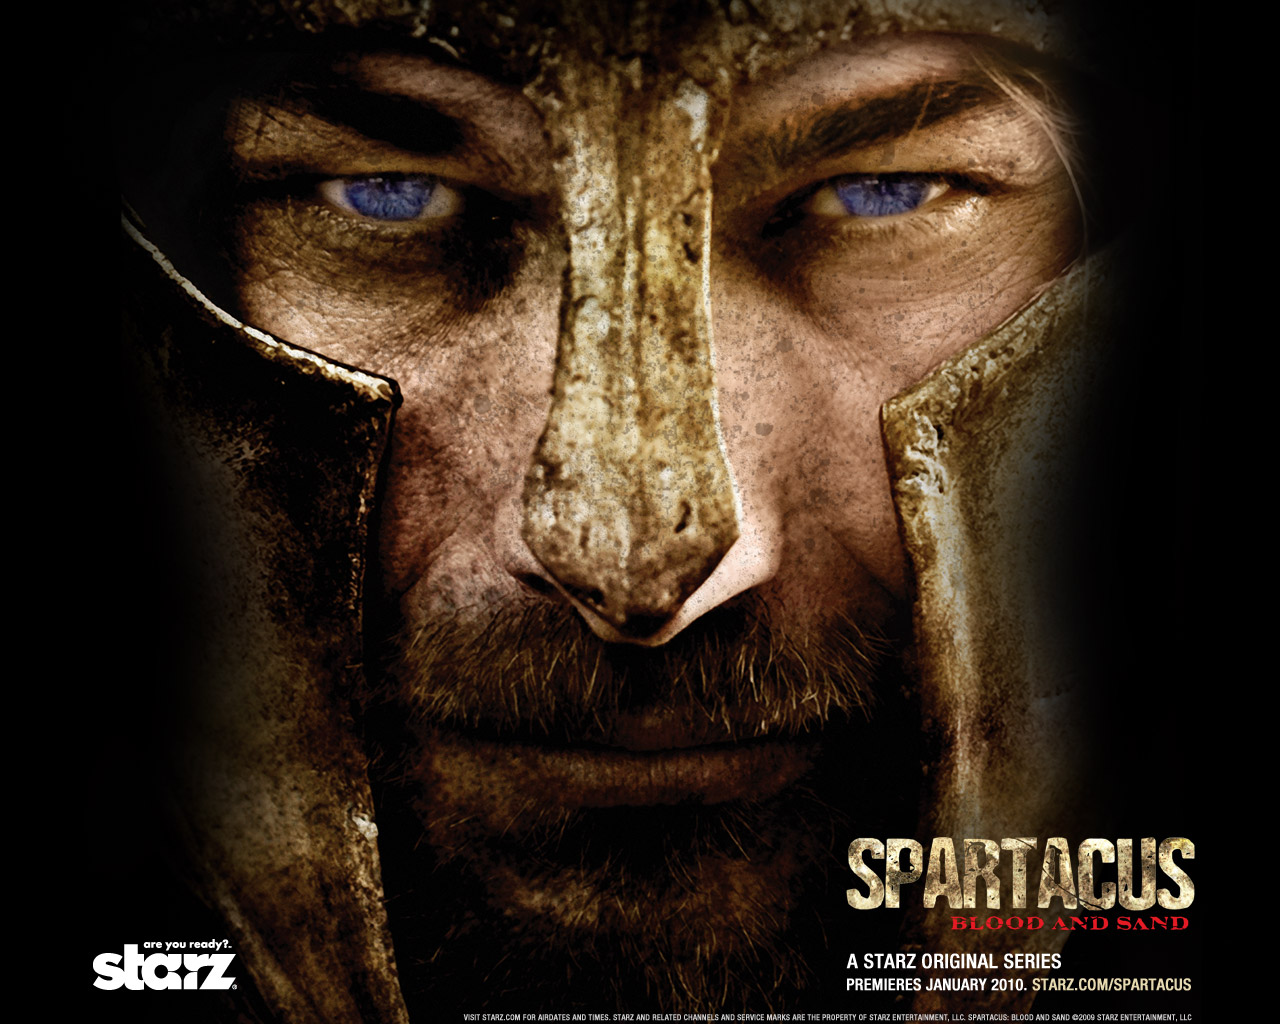 Spartacus hd wallpaper 2013: view hd image of spartacus hd.